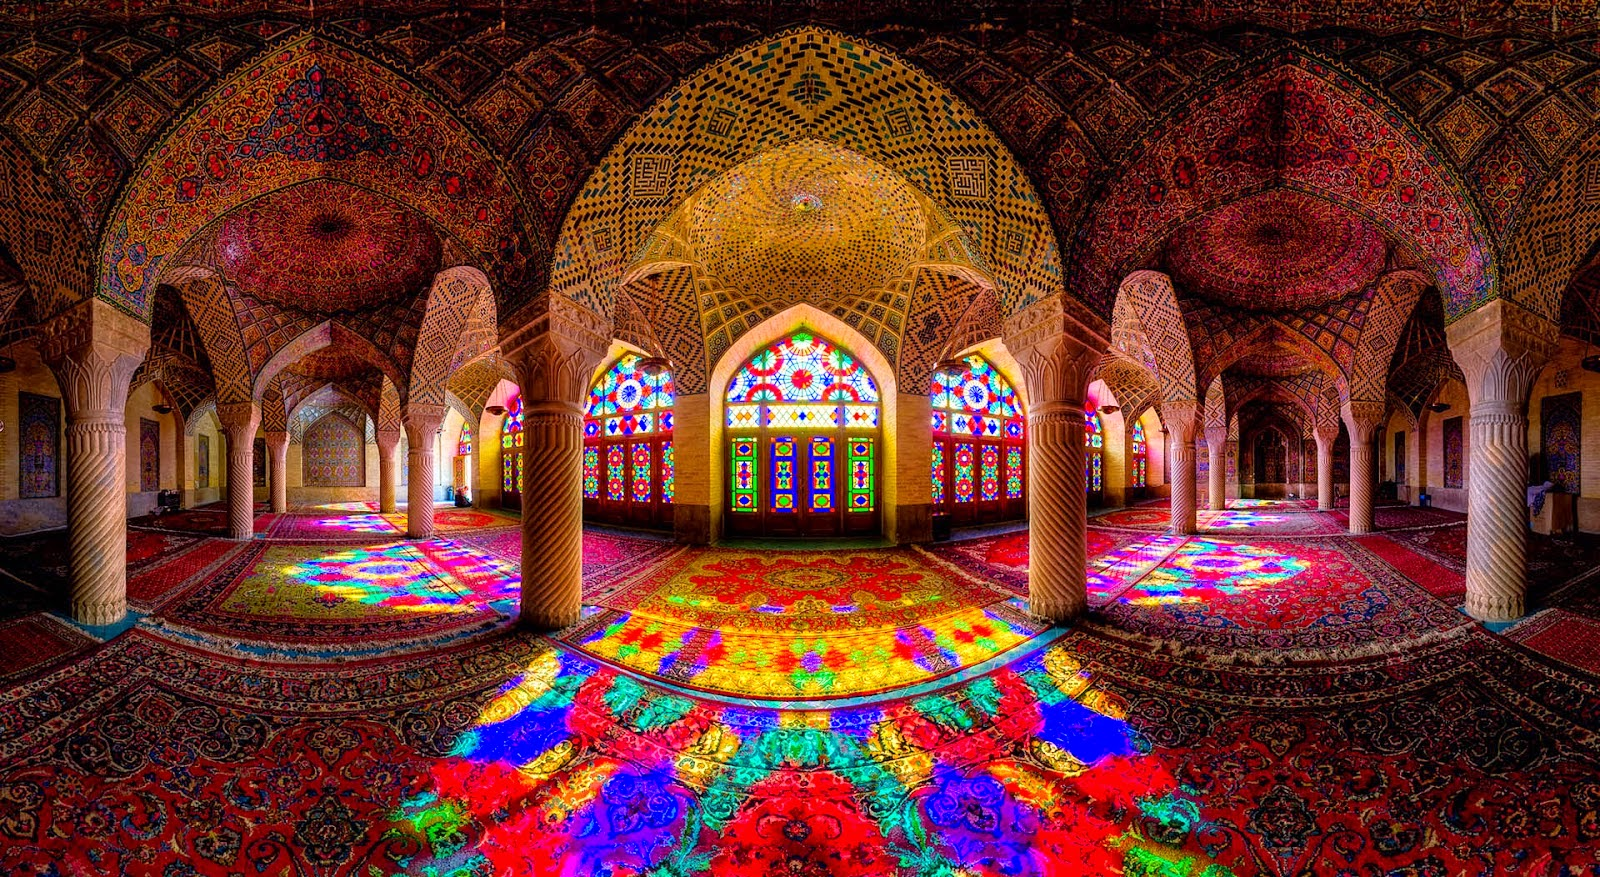 nasir_al_mulk_mosque_in_iran_4